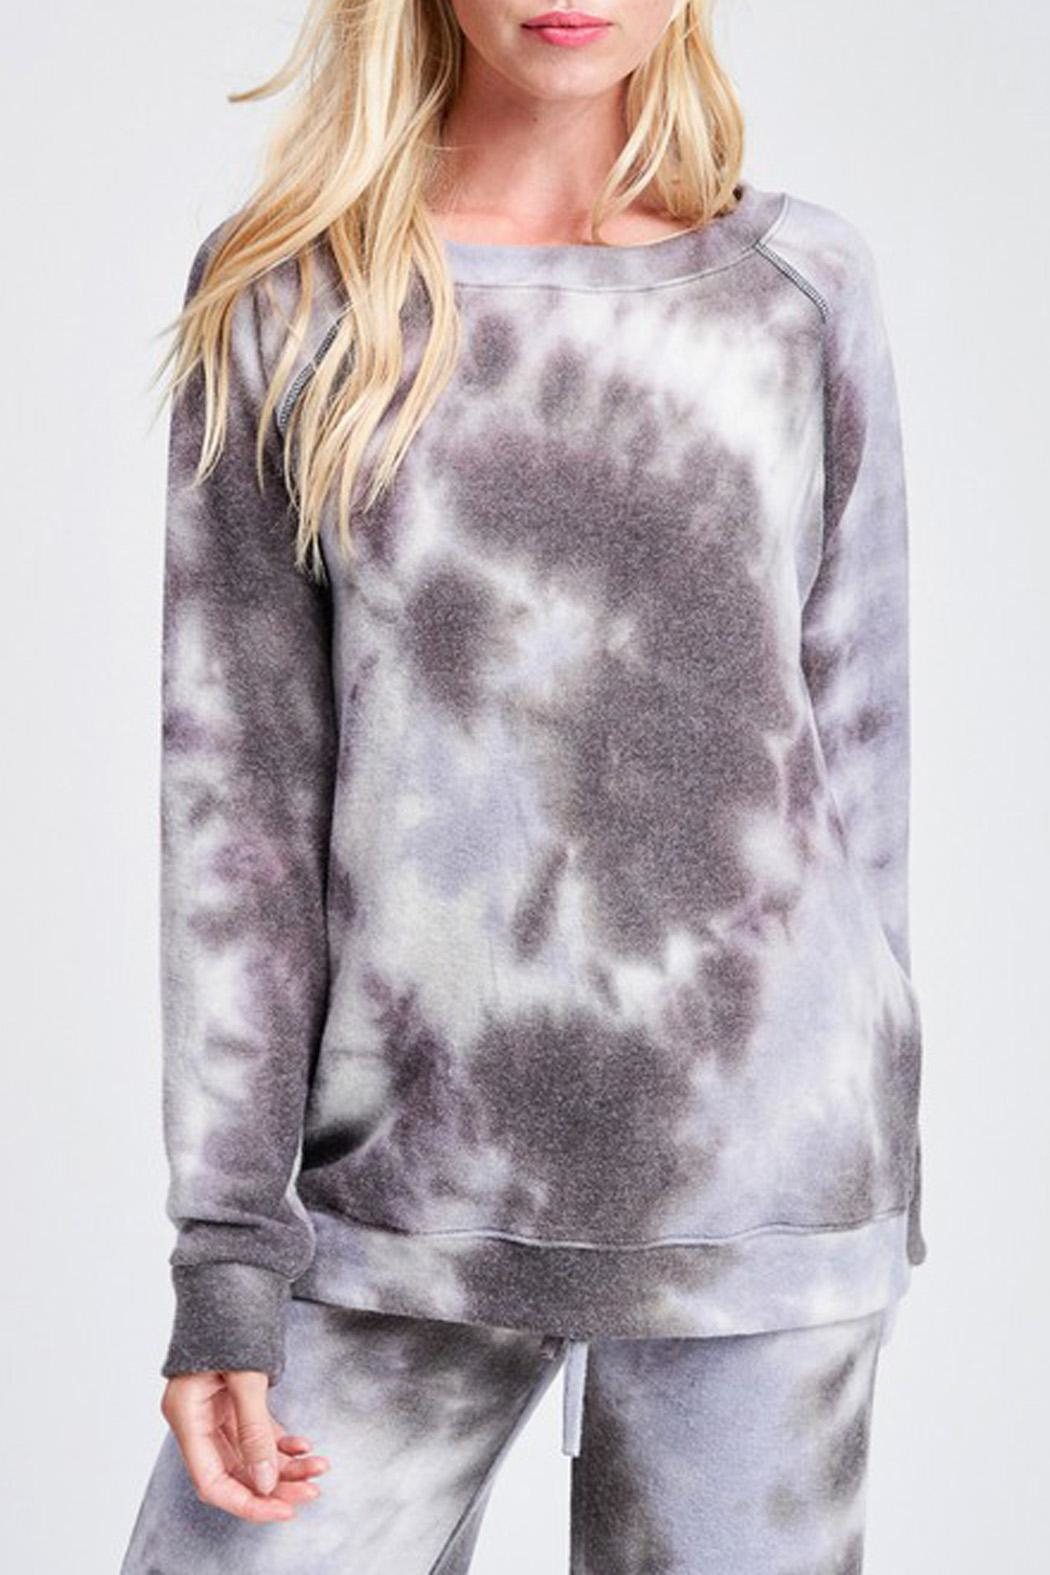 Wild Lilies Jewelry  Tie Dye Sweater - Main Image